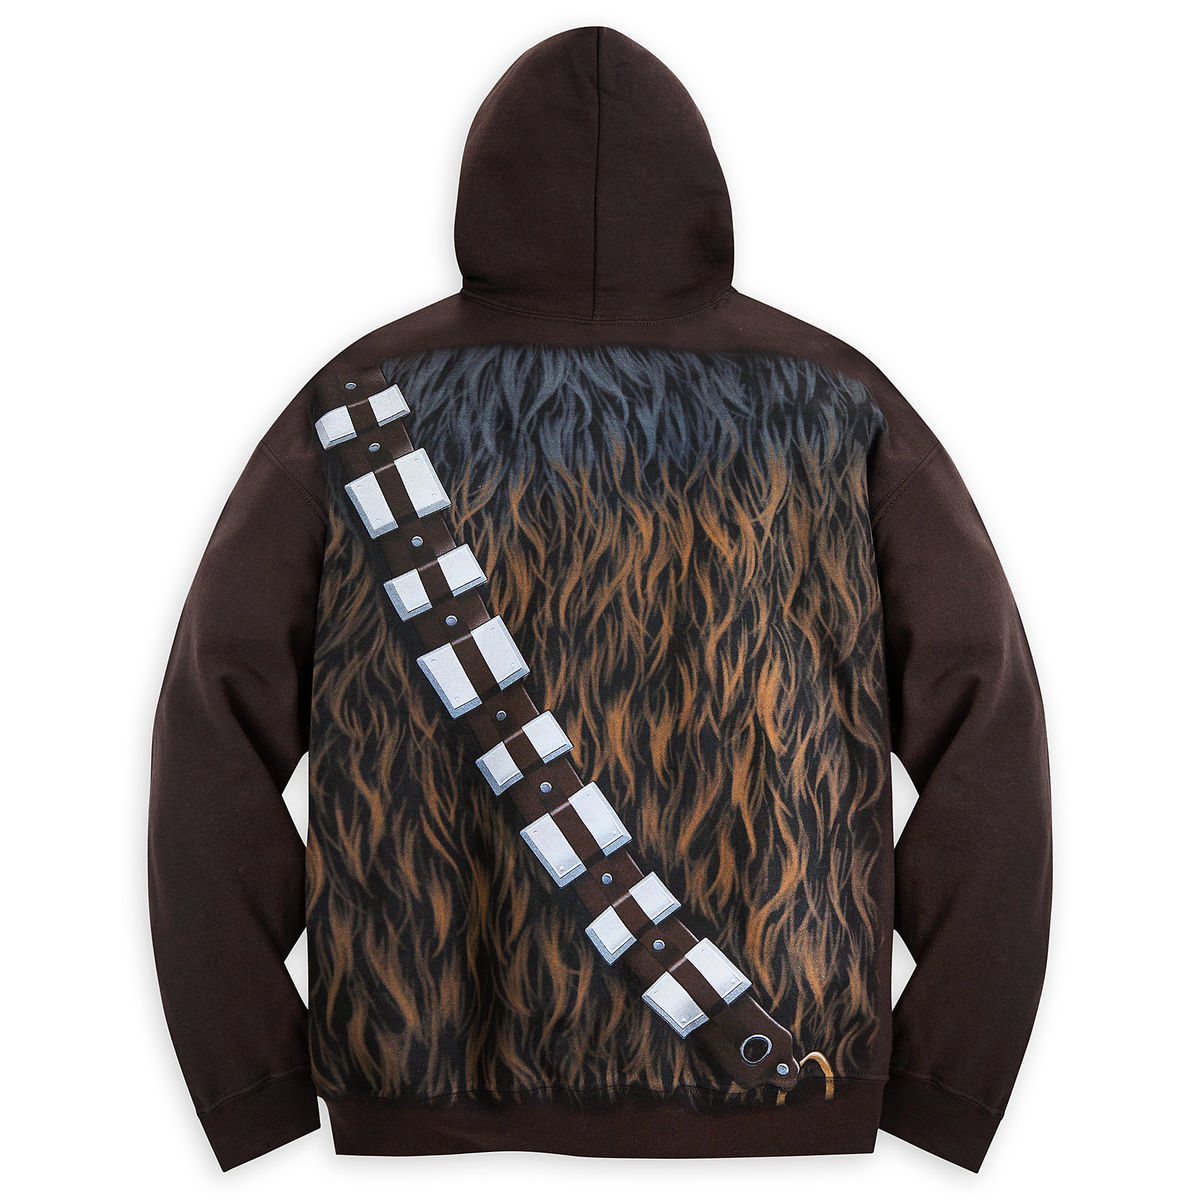 Product Image of Chewbacca Costume Hoodie for Adults - Star Wars   2 01fb48bb6